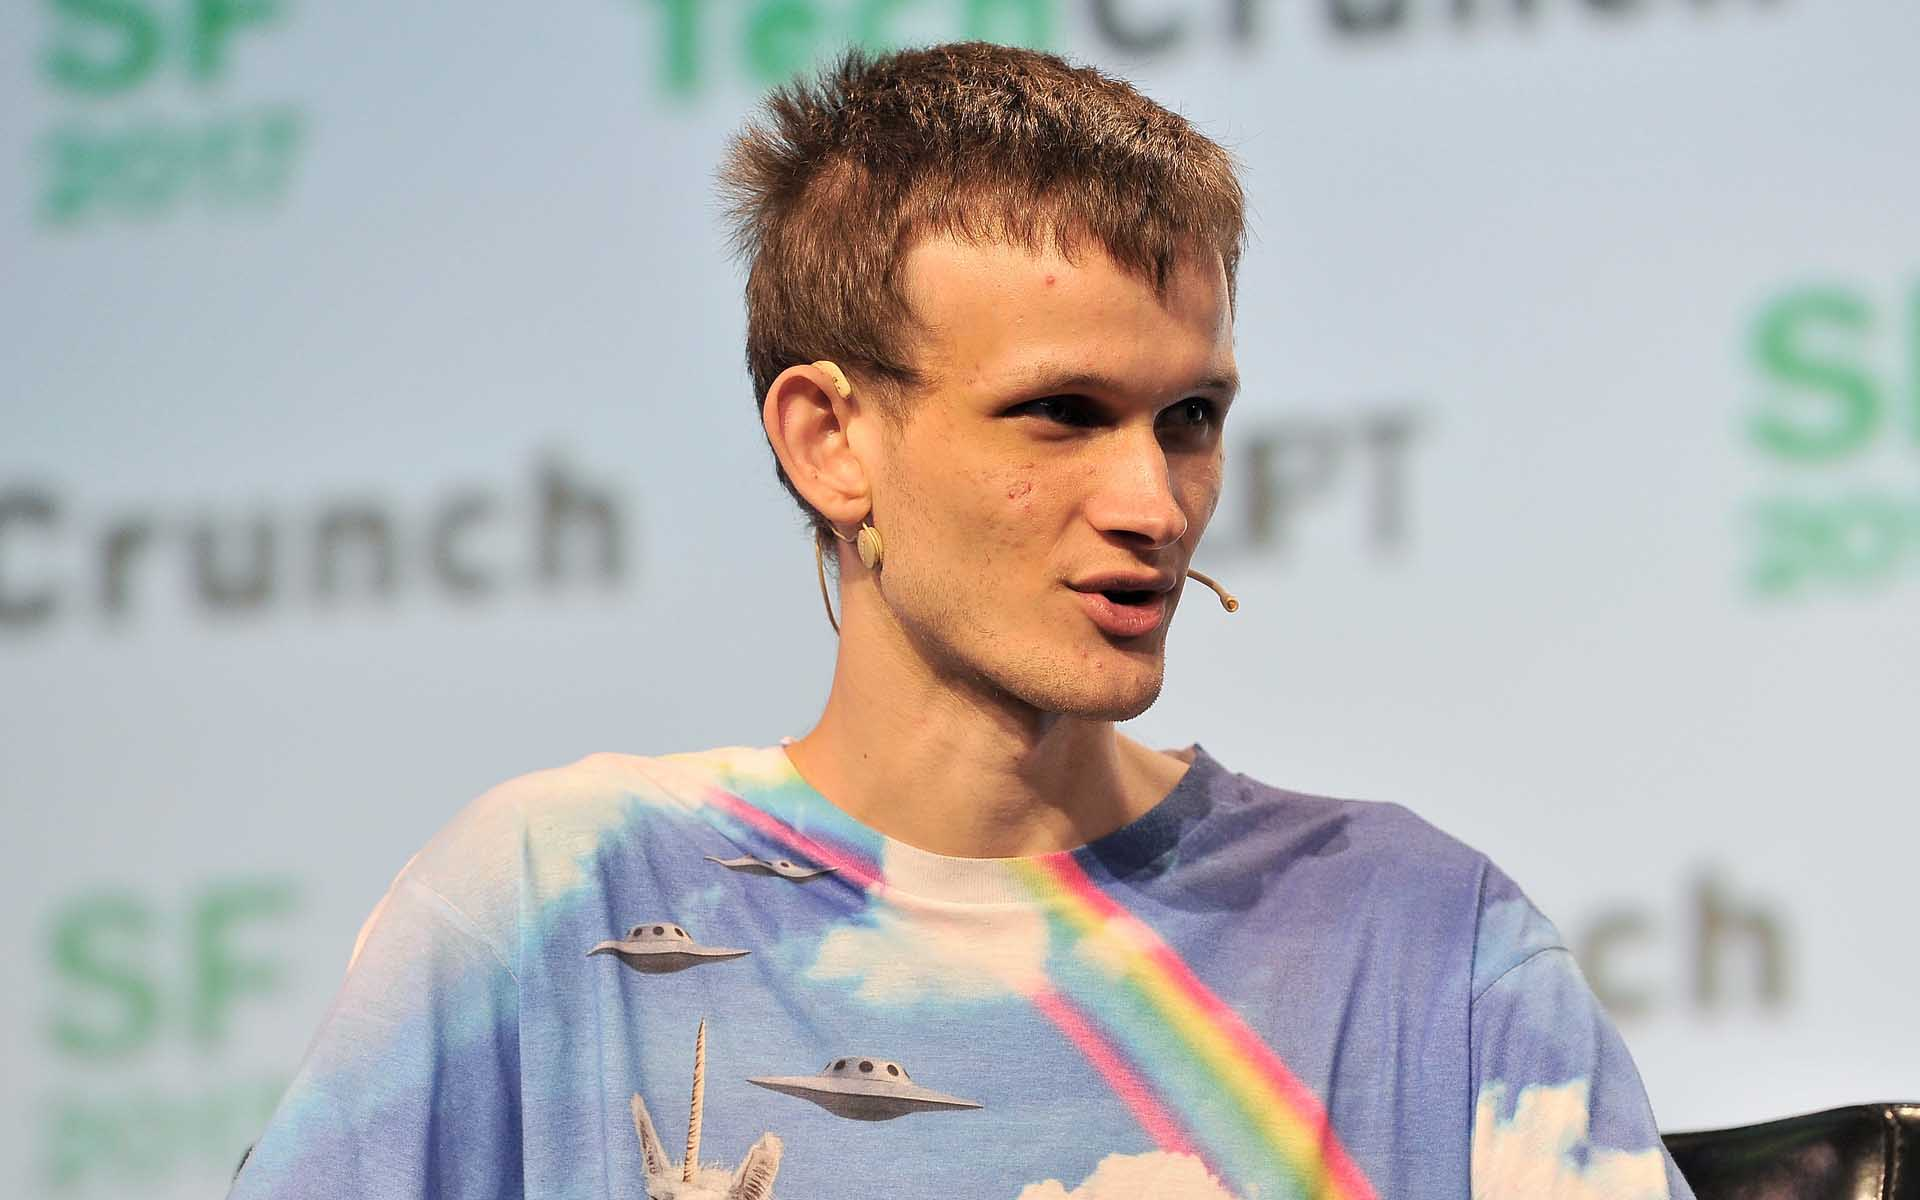 Ethereum 'Will Be Better' If Price Goes Up, Concedes Vitalik Buterin